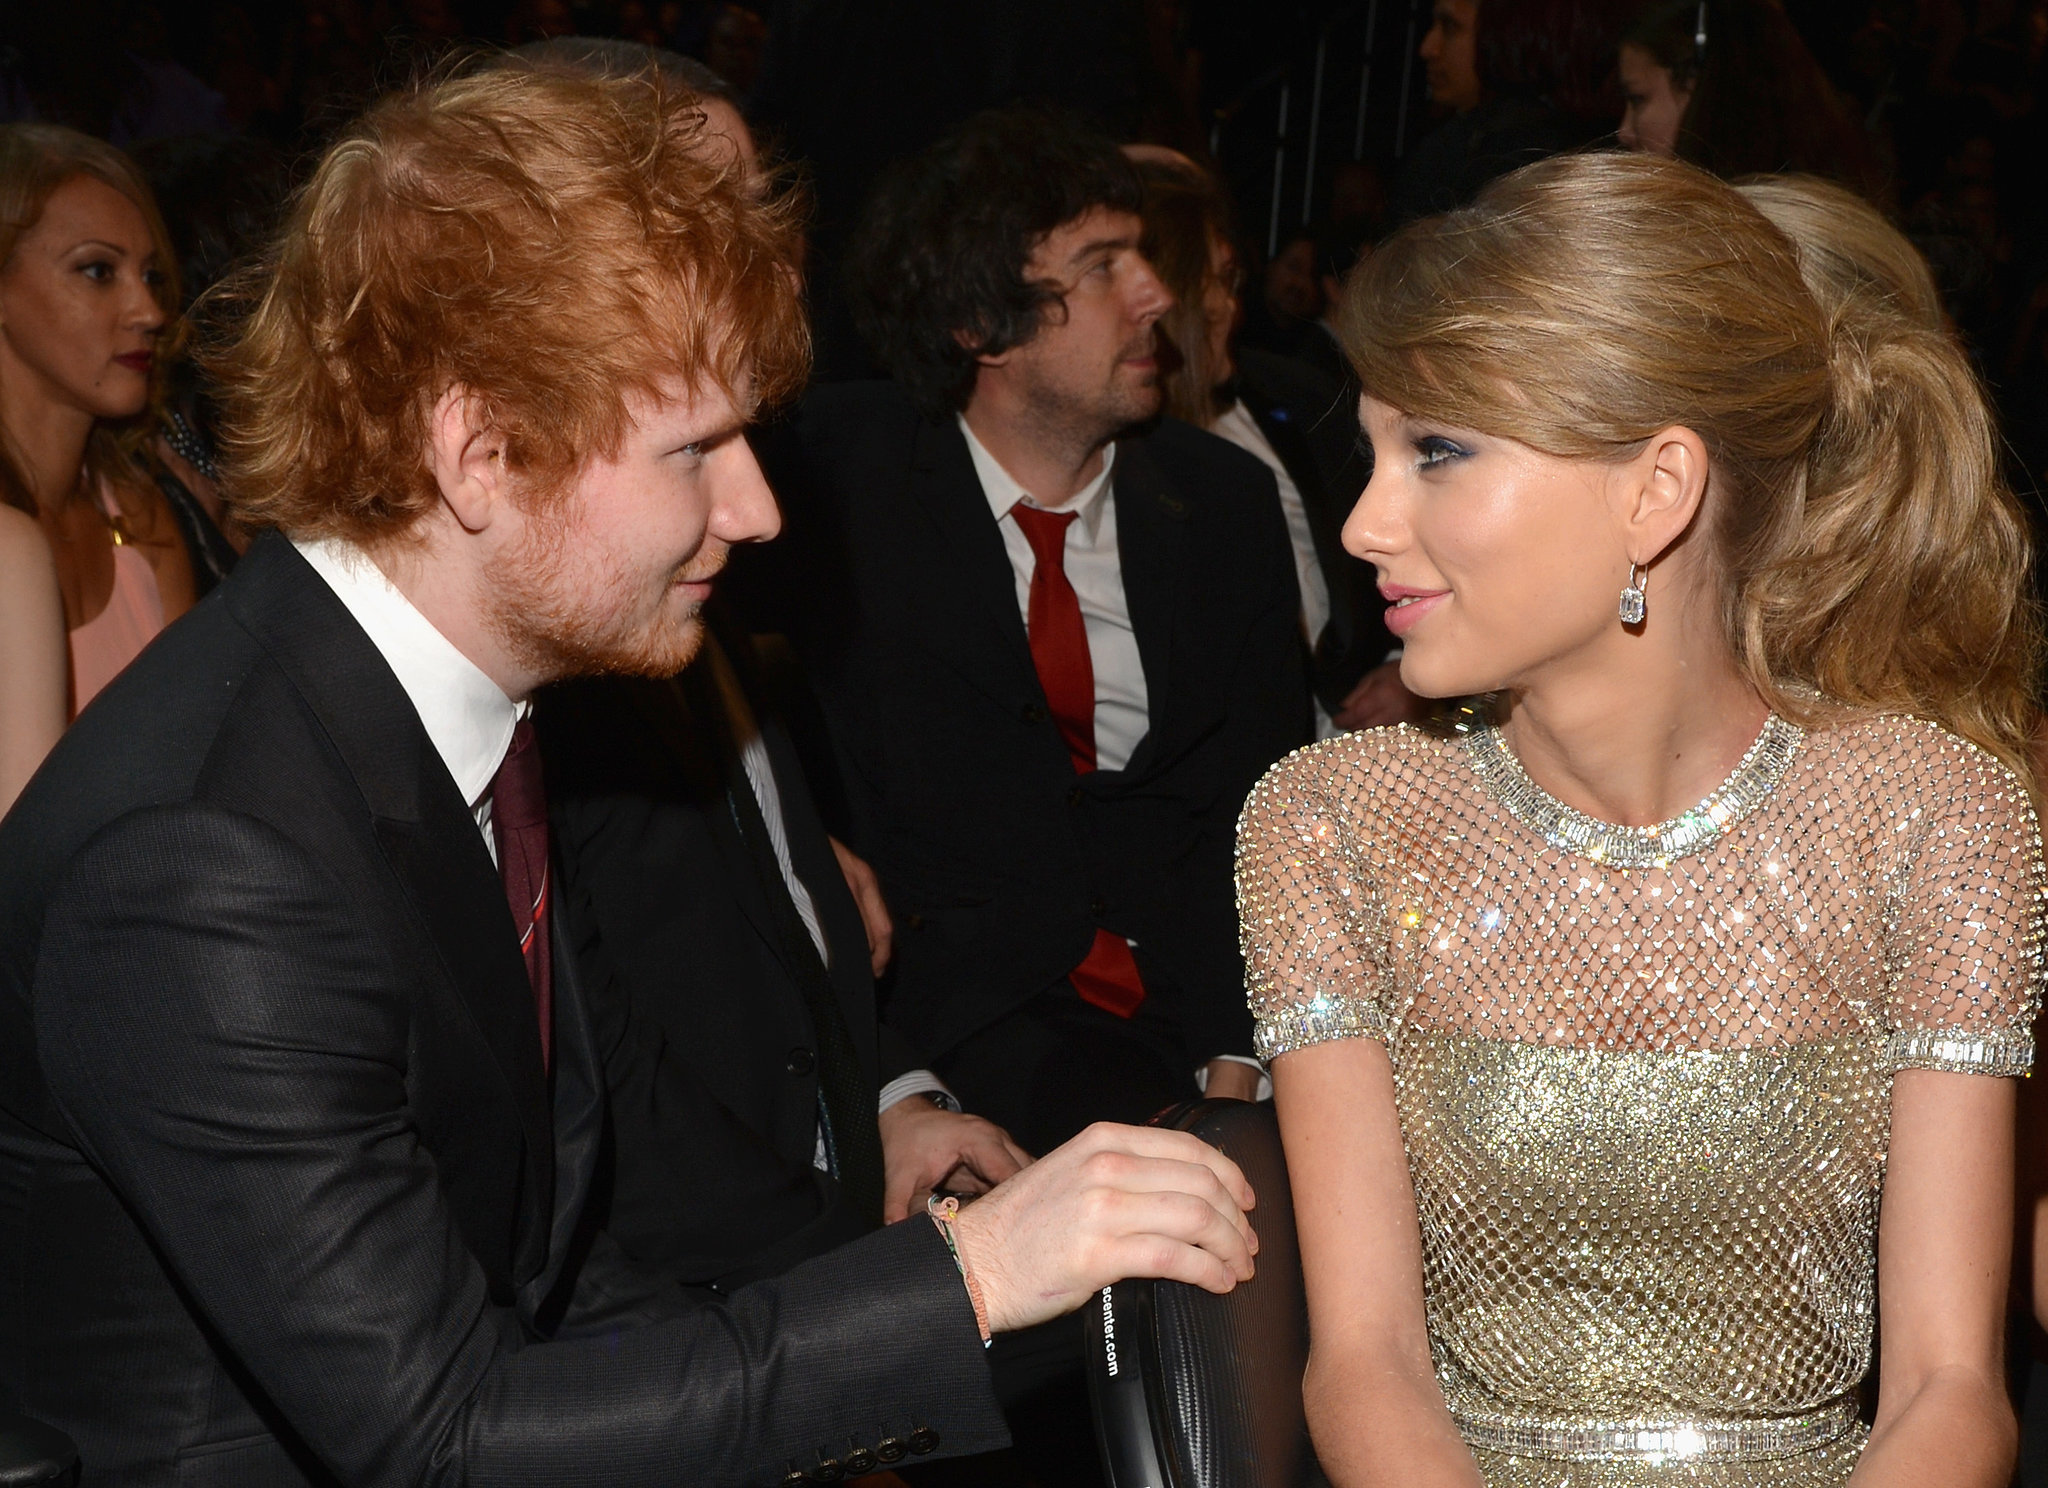 ed sheeran and taylor swift - photo #6